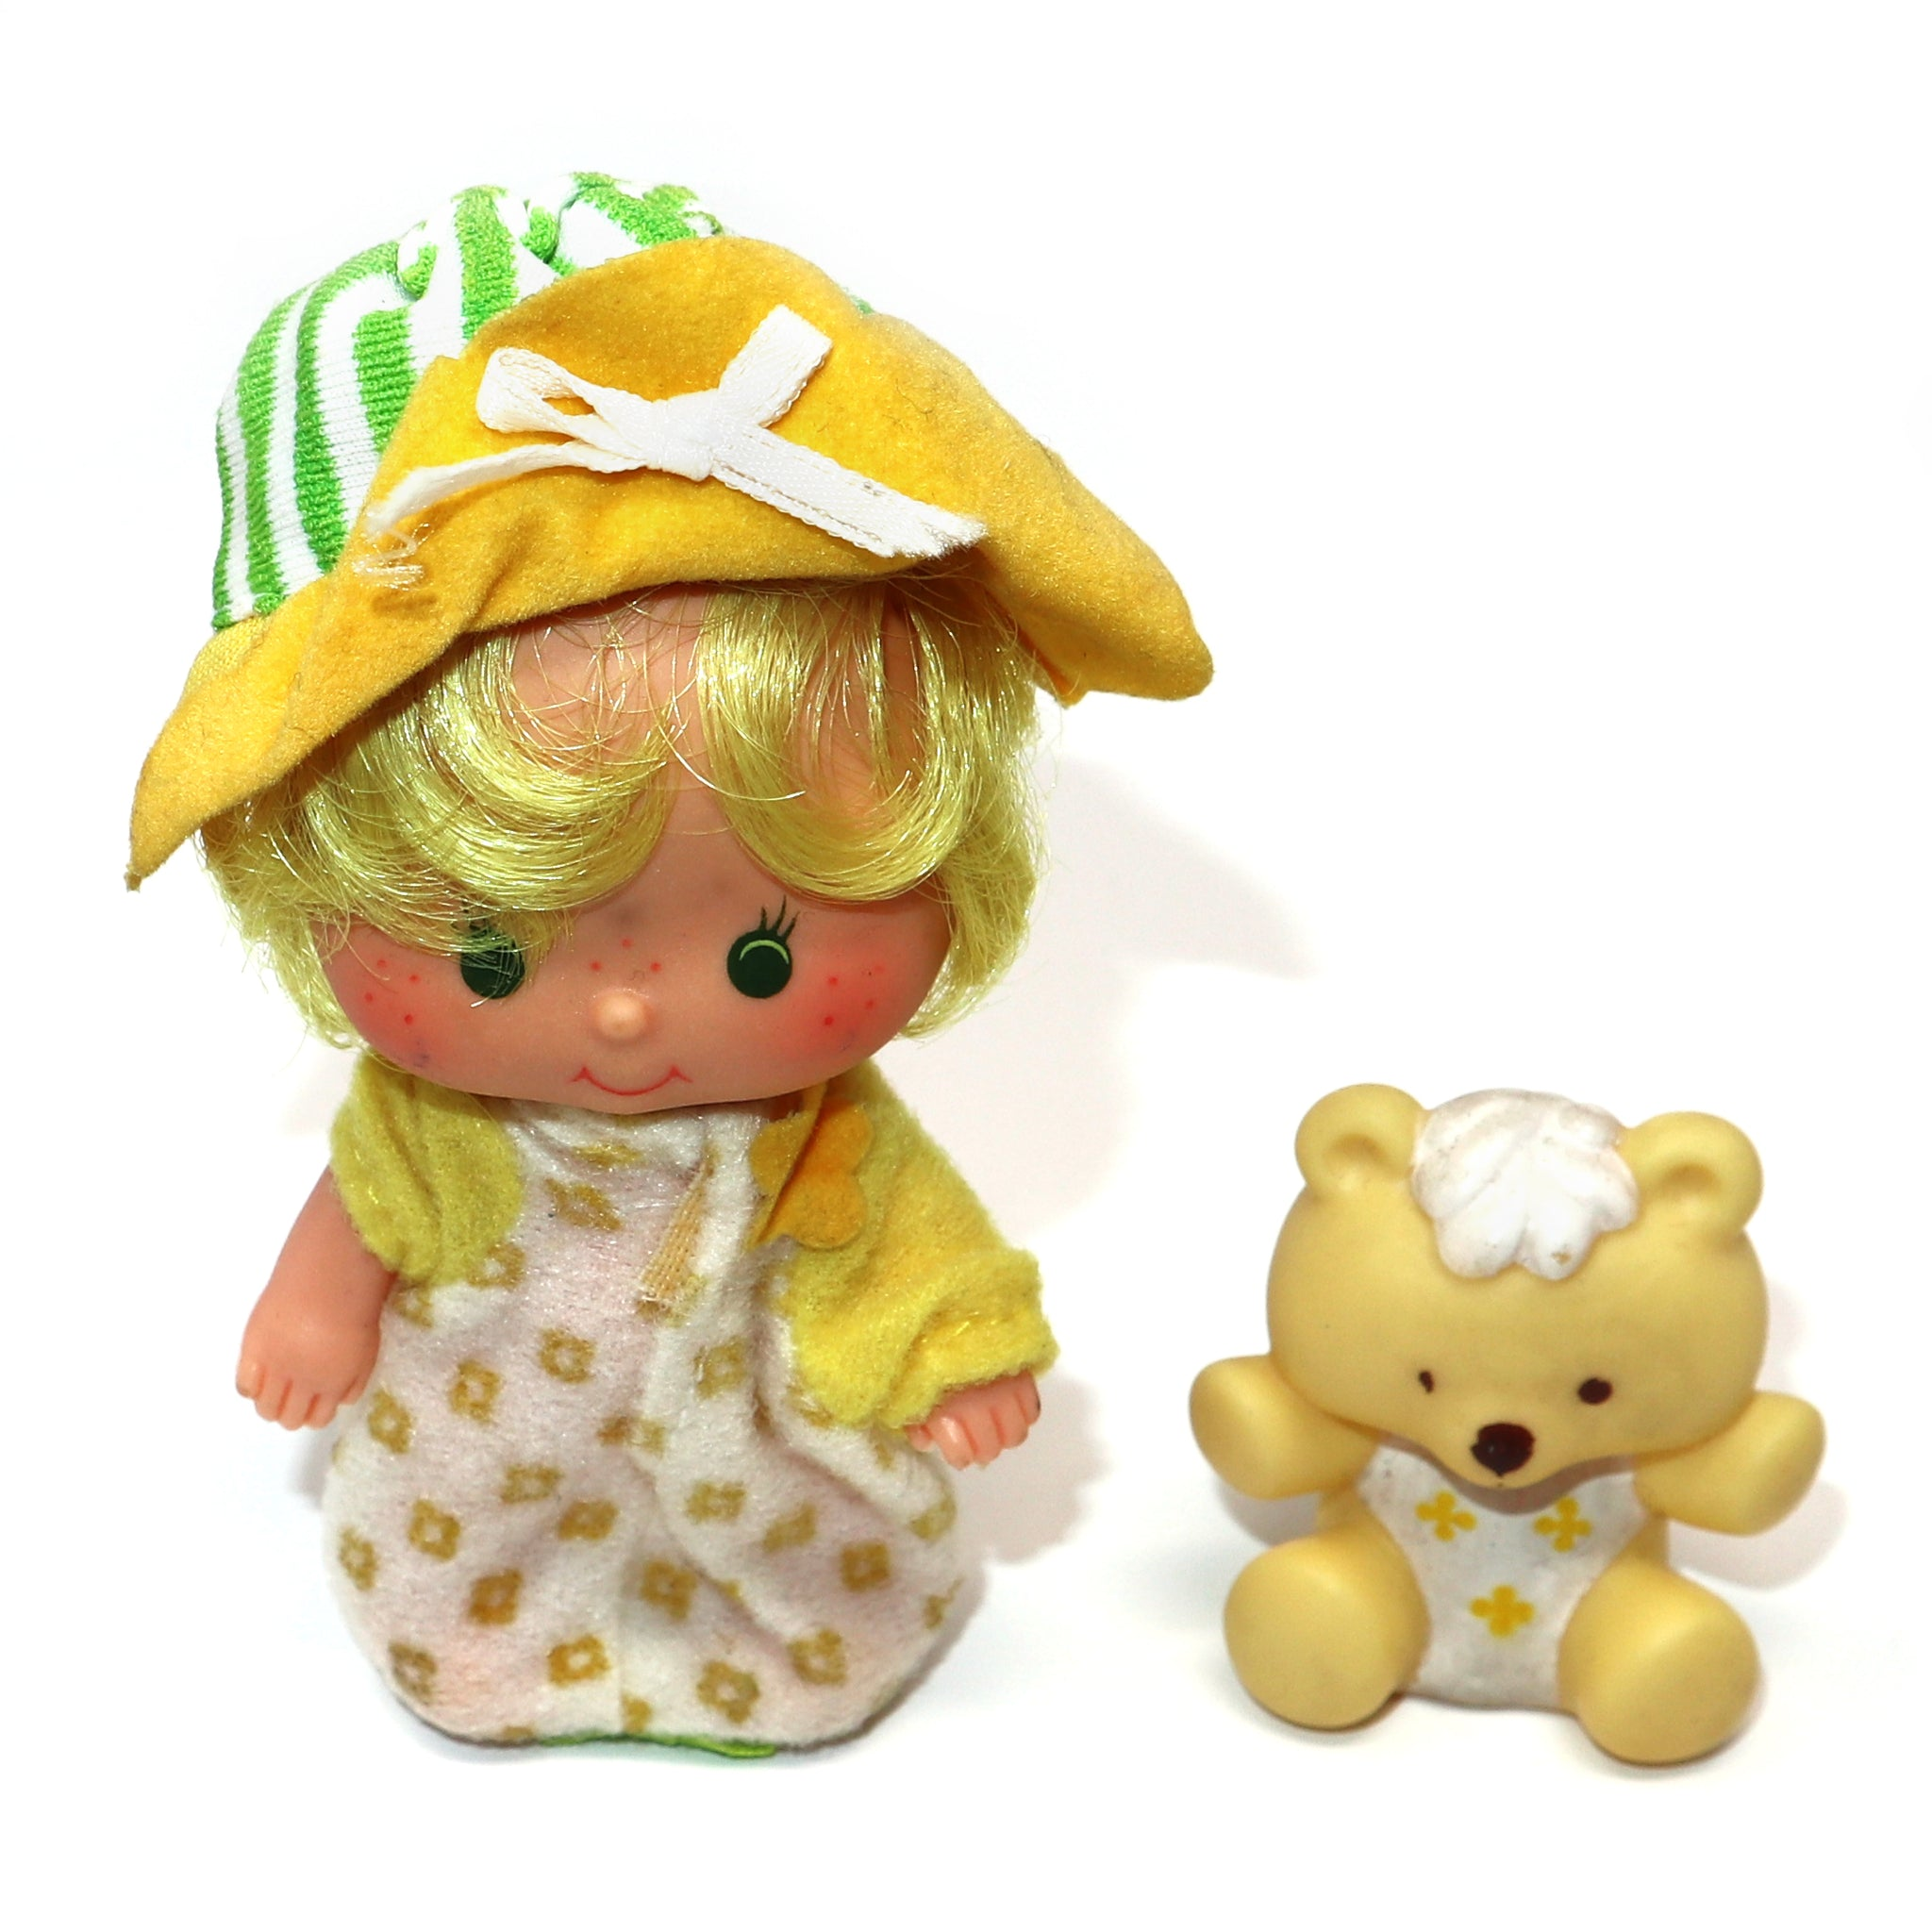 Vintage 1982 80s Kenner Strawberry Shortcake Butter Cookie Doll + Jelly Bear Pet